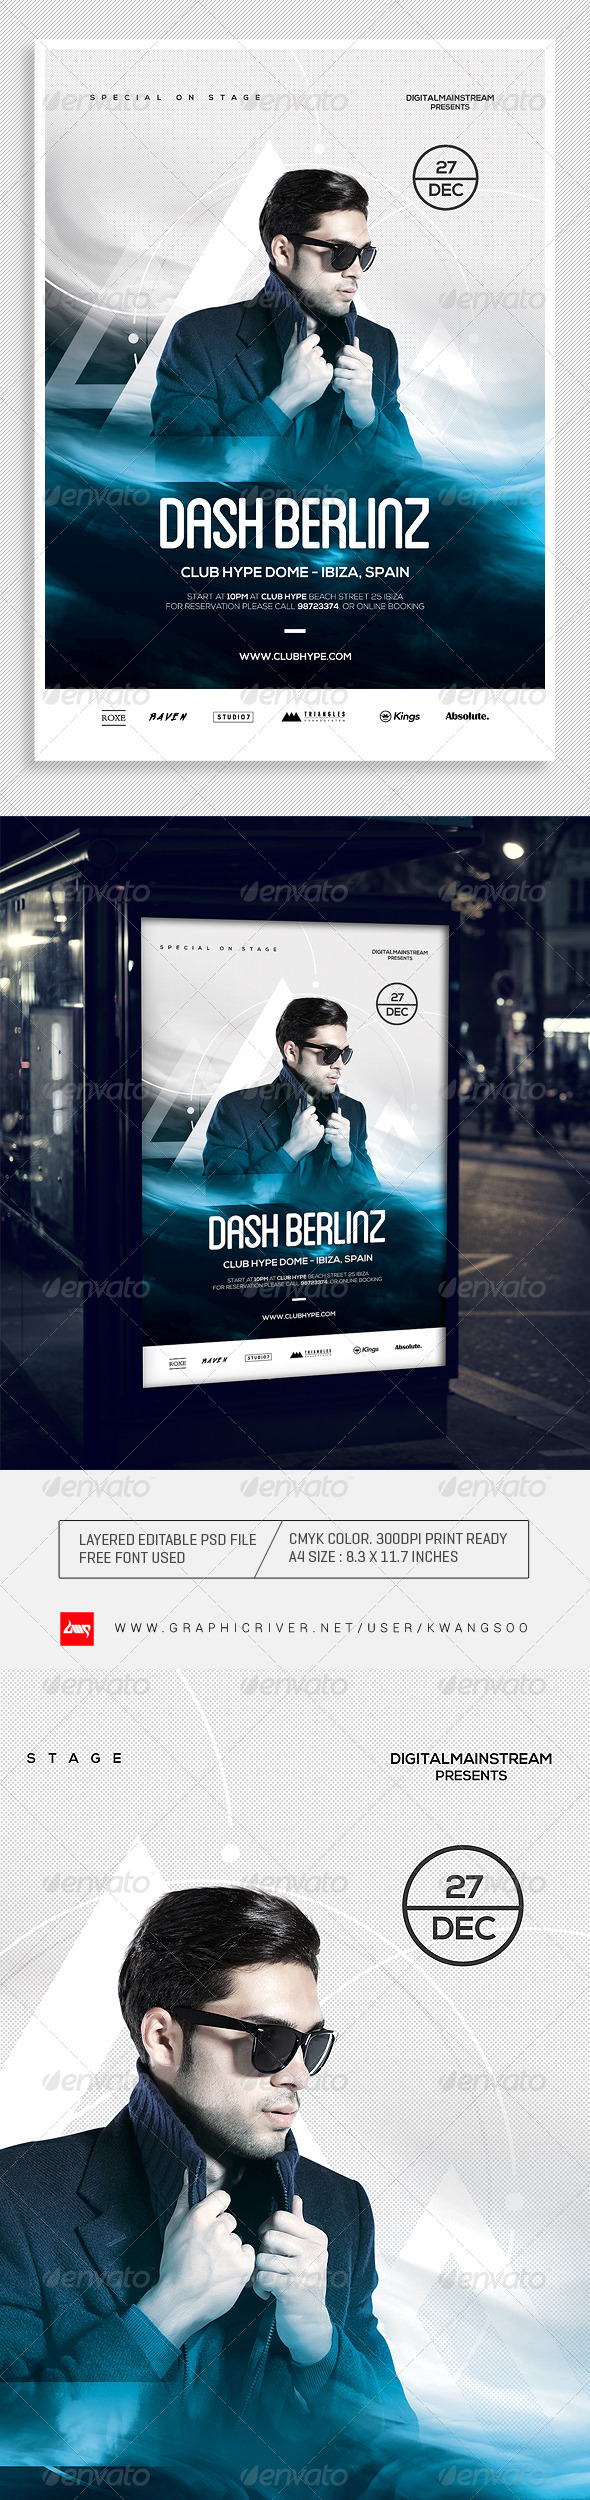 Special Dj Electronic Dance Music Flyer / Poster 2 - Clubs & Parties Events